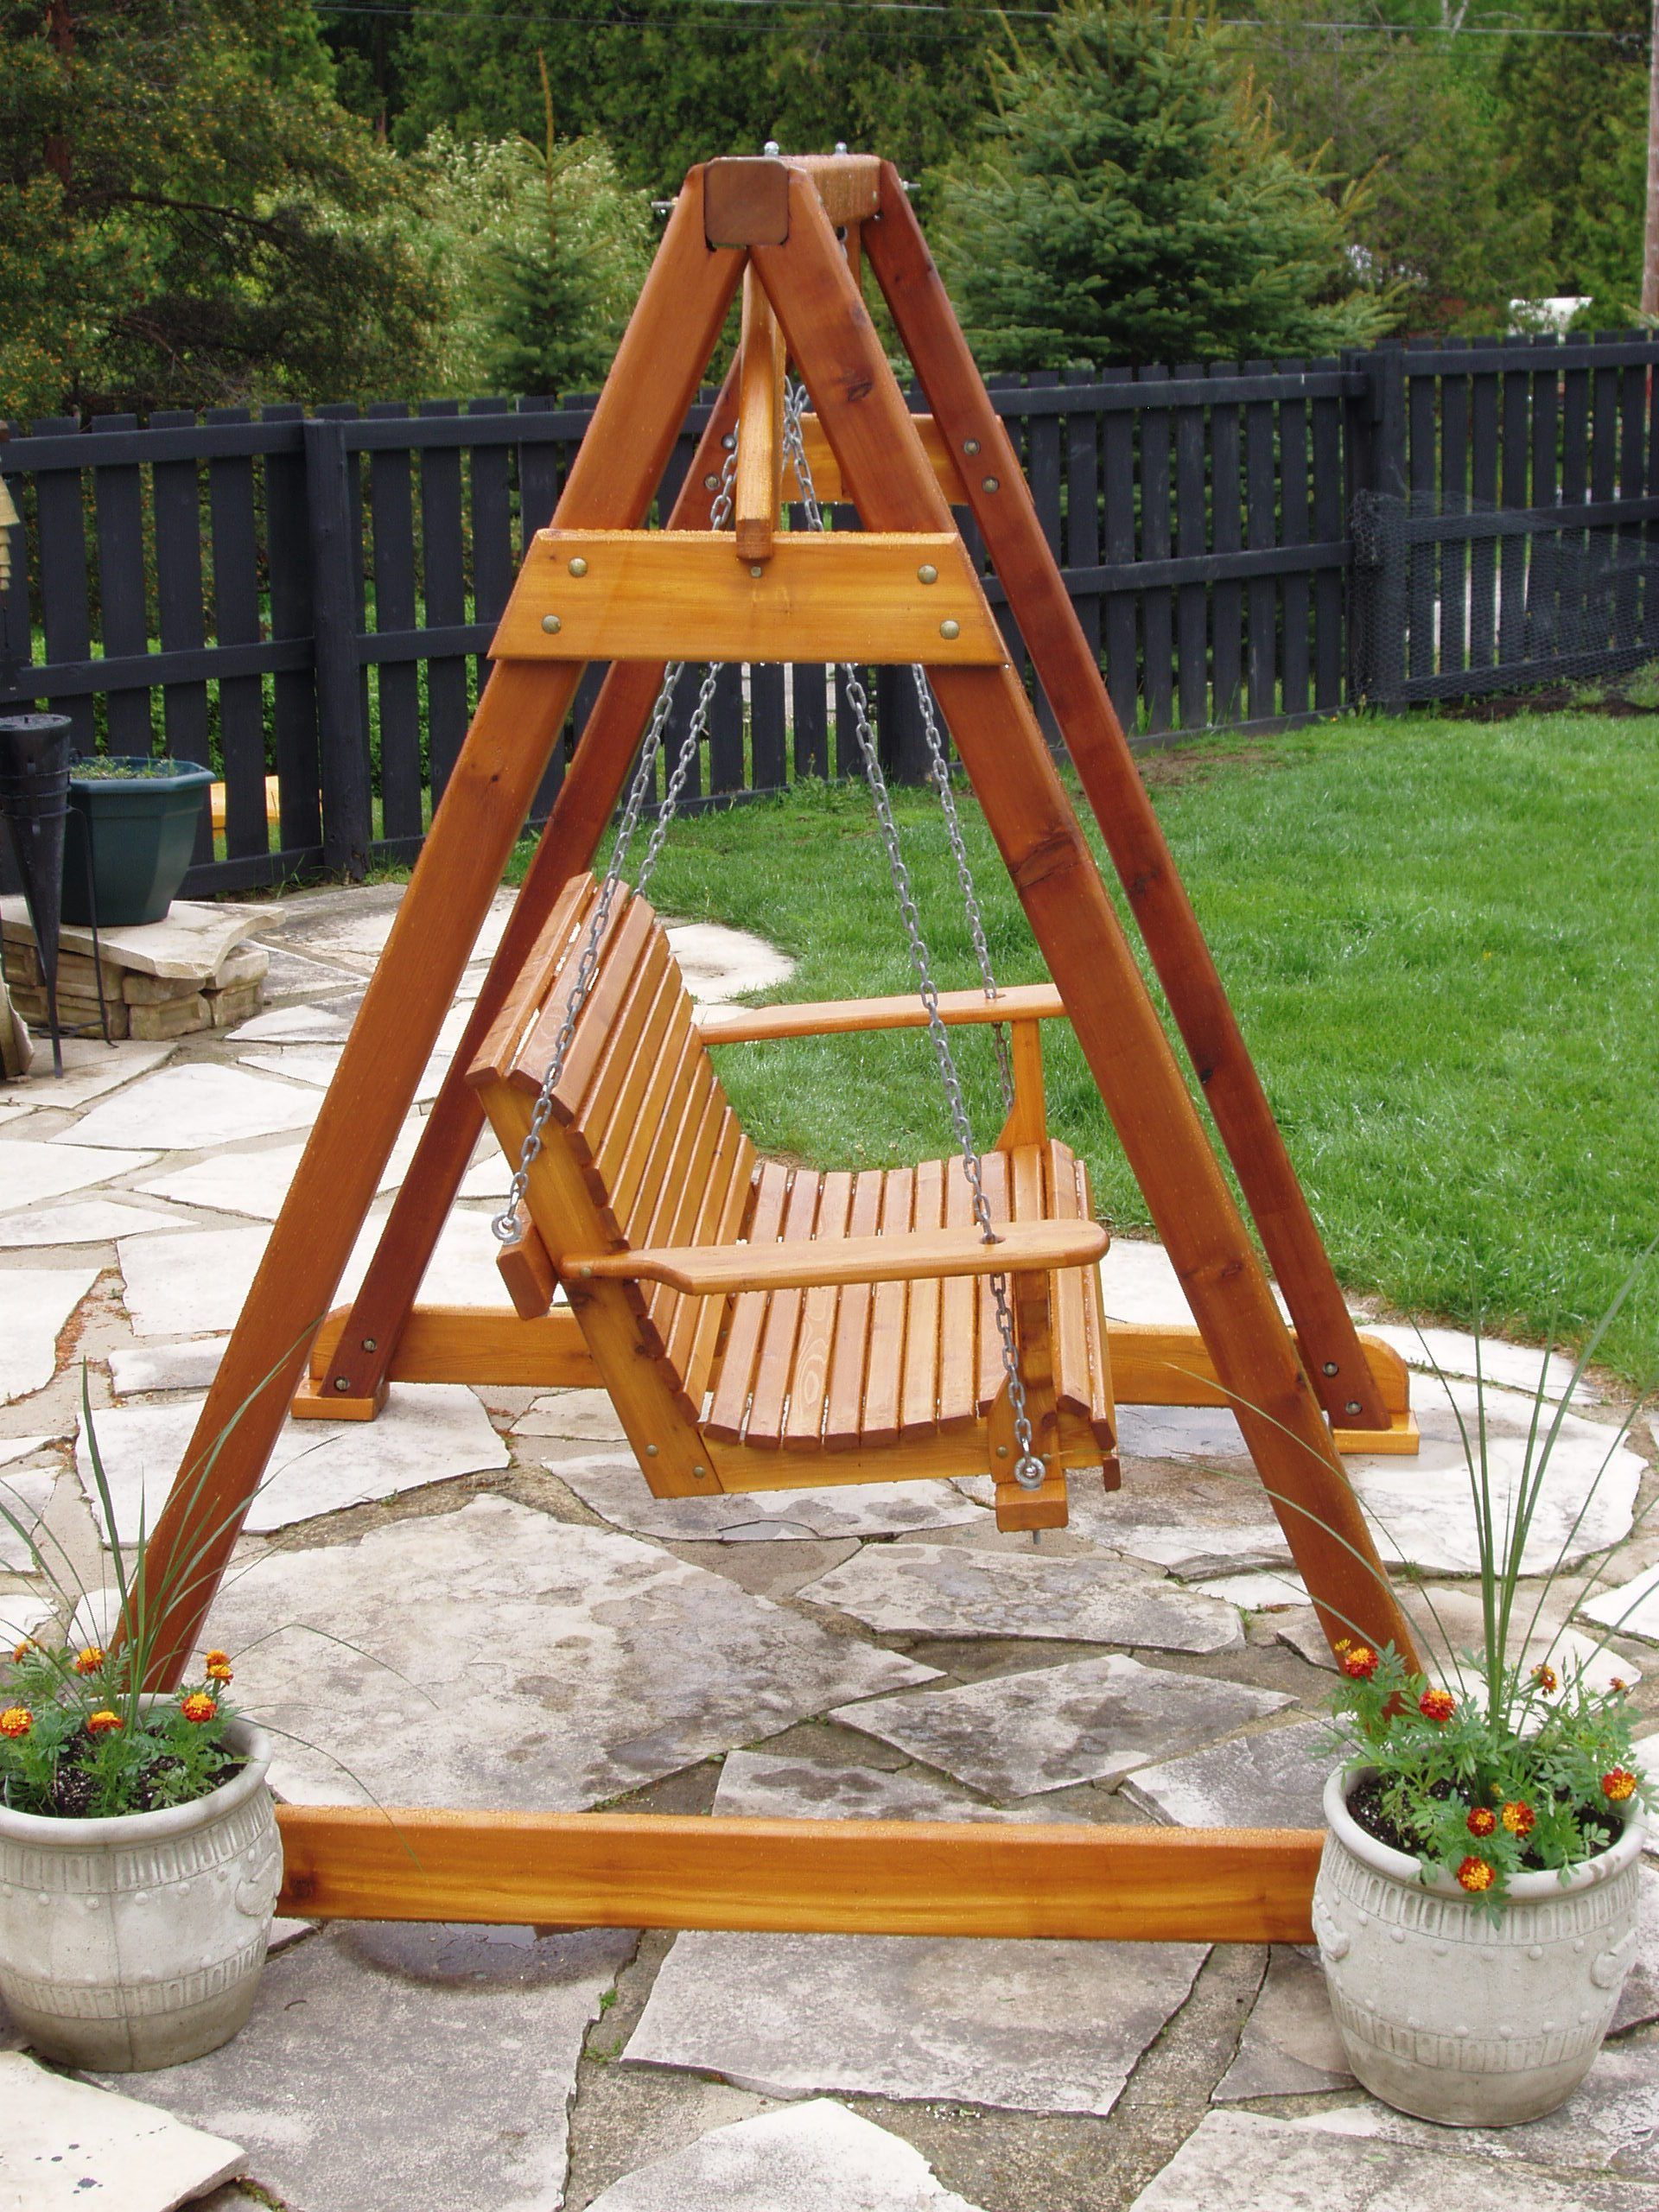 Build Diy How To A Frame Porch Swing Stand Pdf Plans Wooden Sharpening Wood Lathe Turning Tools